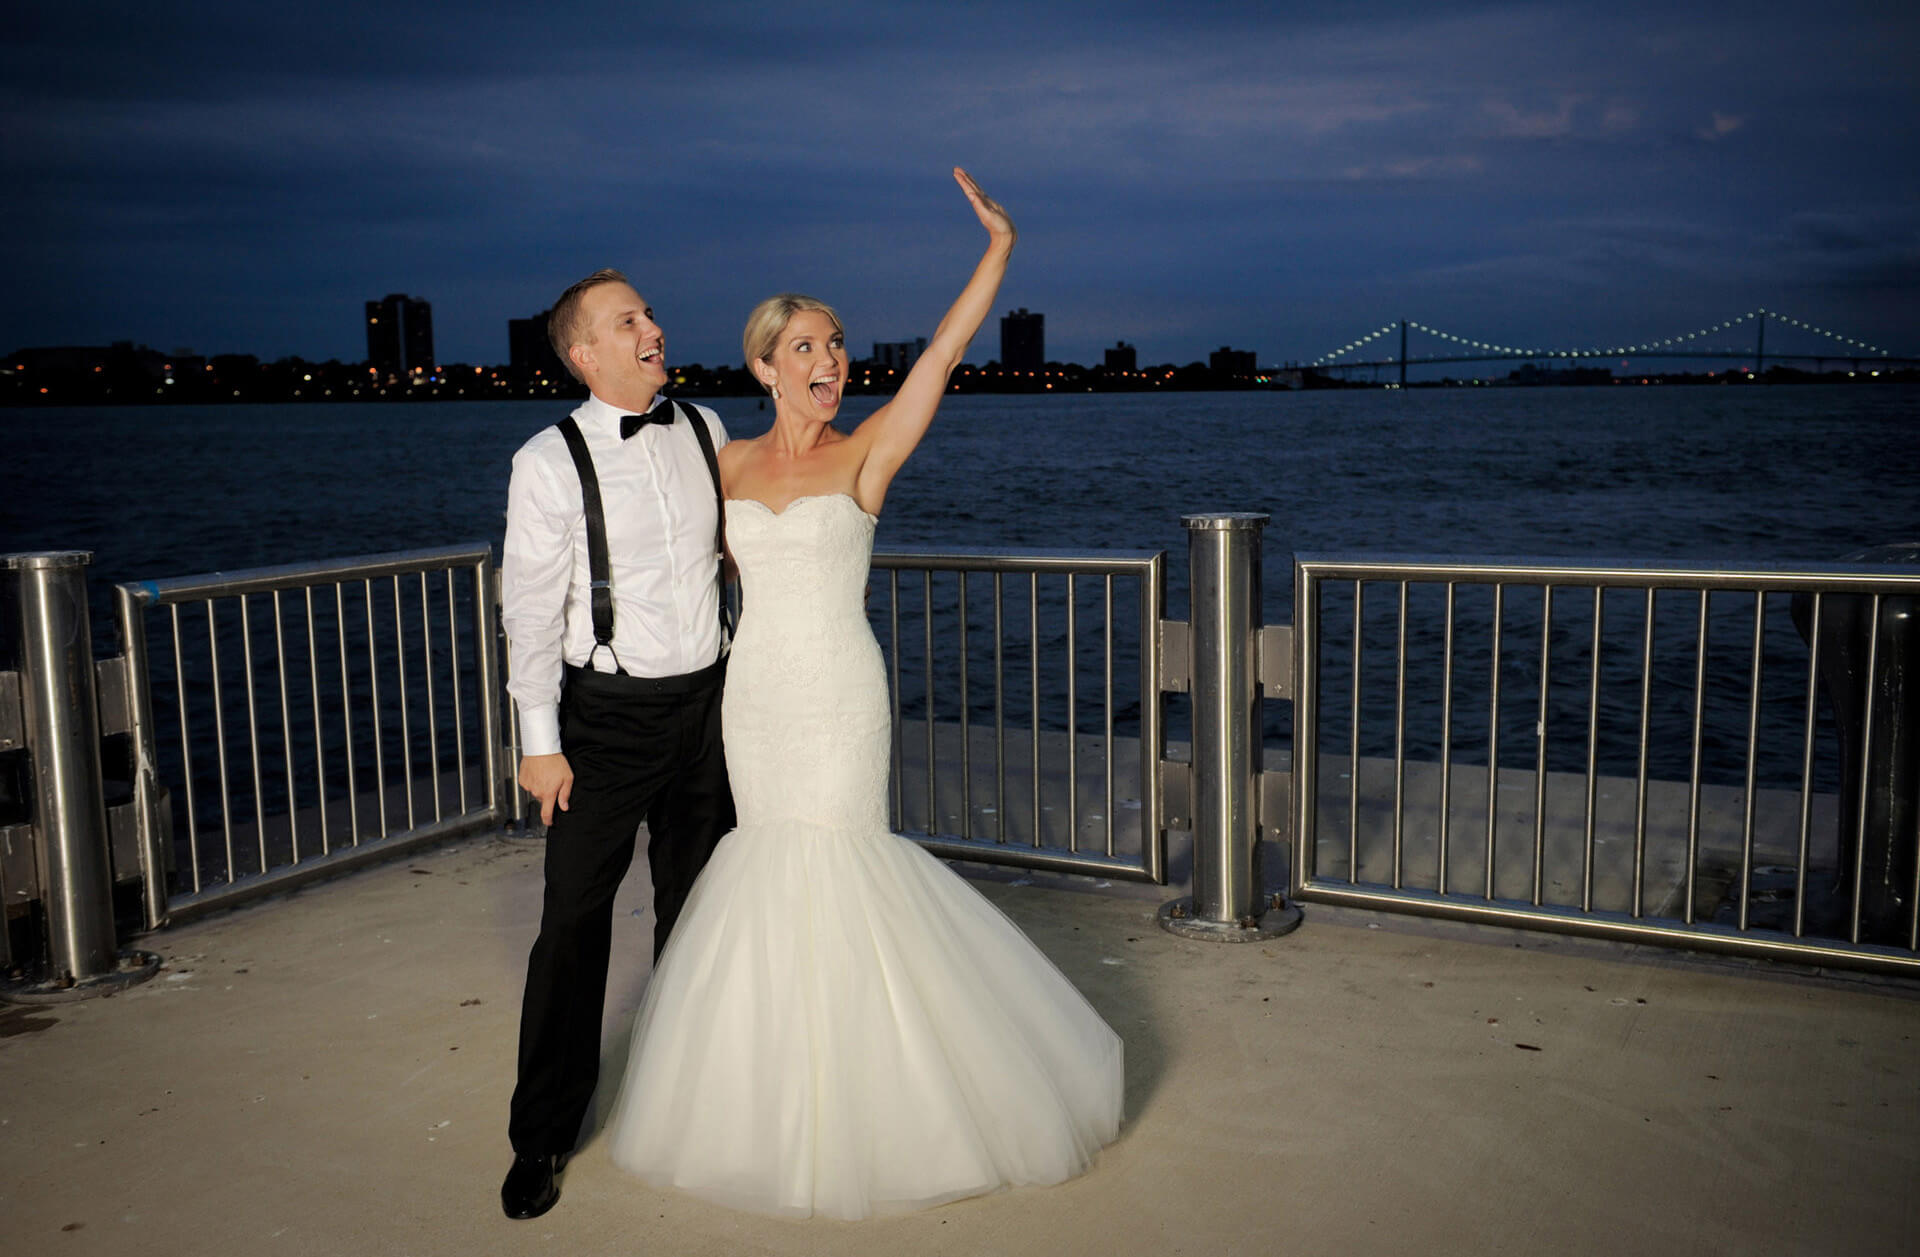 The bride and groom wave to their guests from Detroit, Michigan's waterfront vantage point during their Waterview Loft wedding reception.